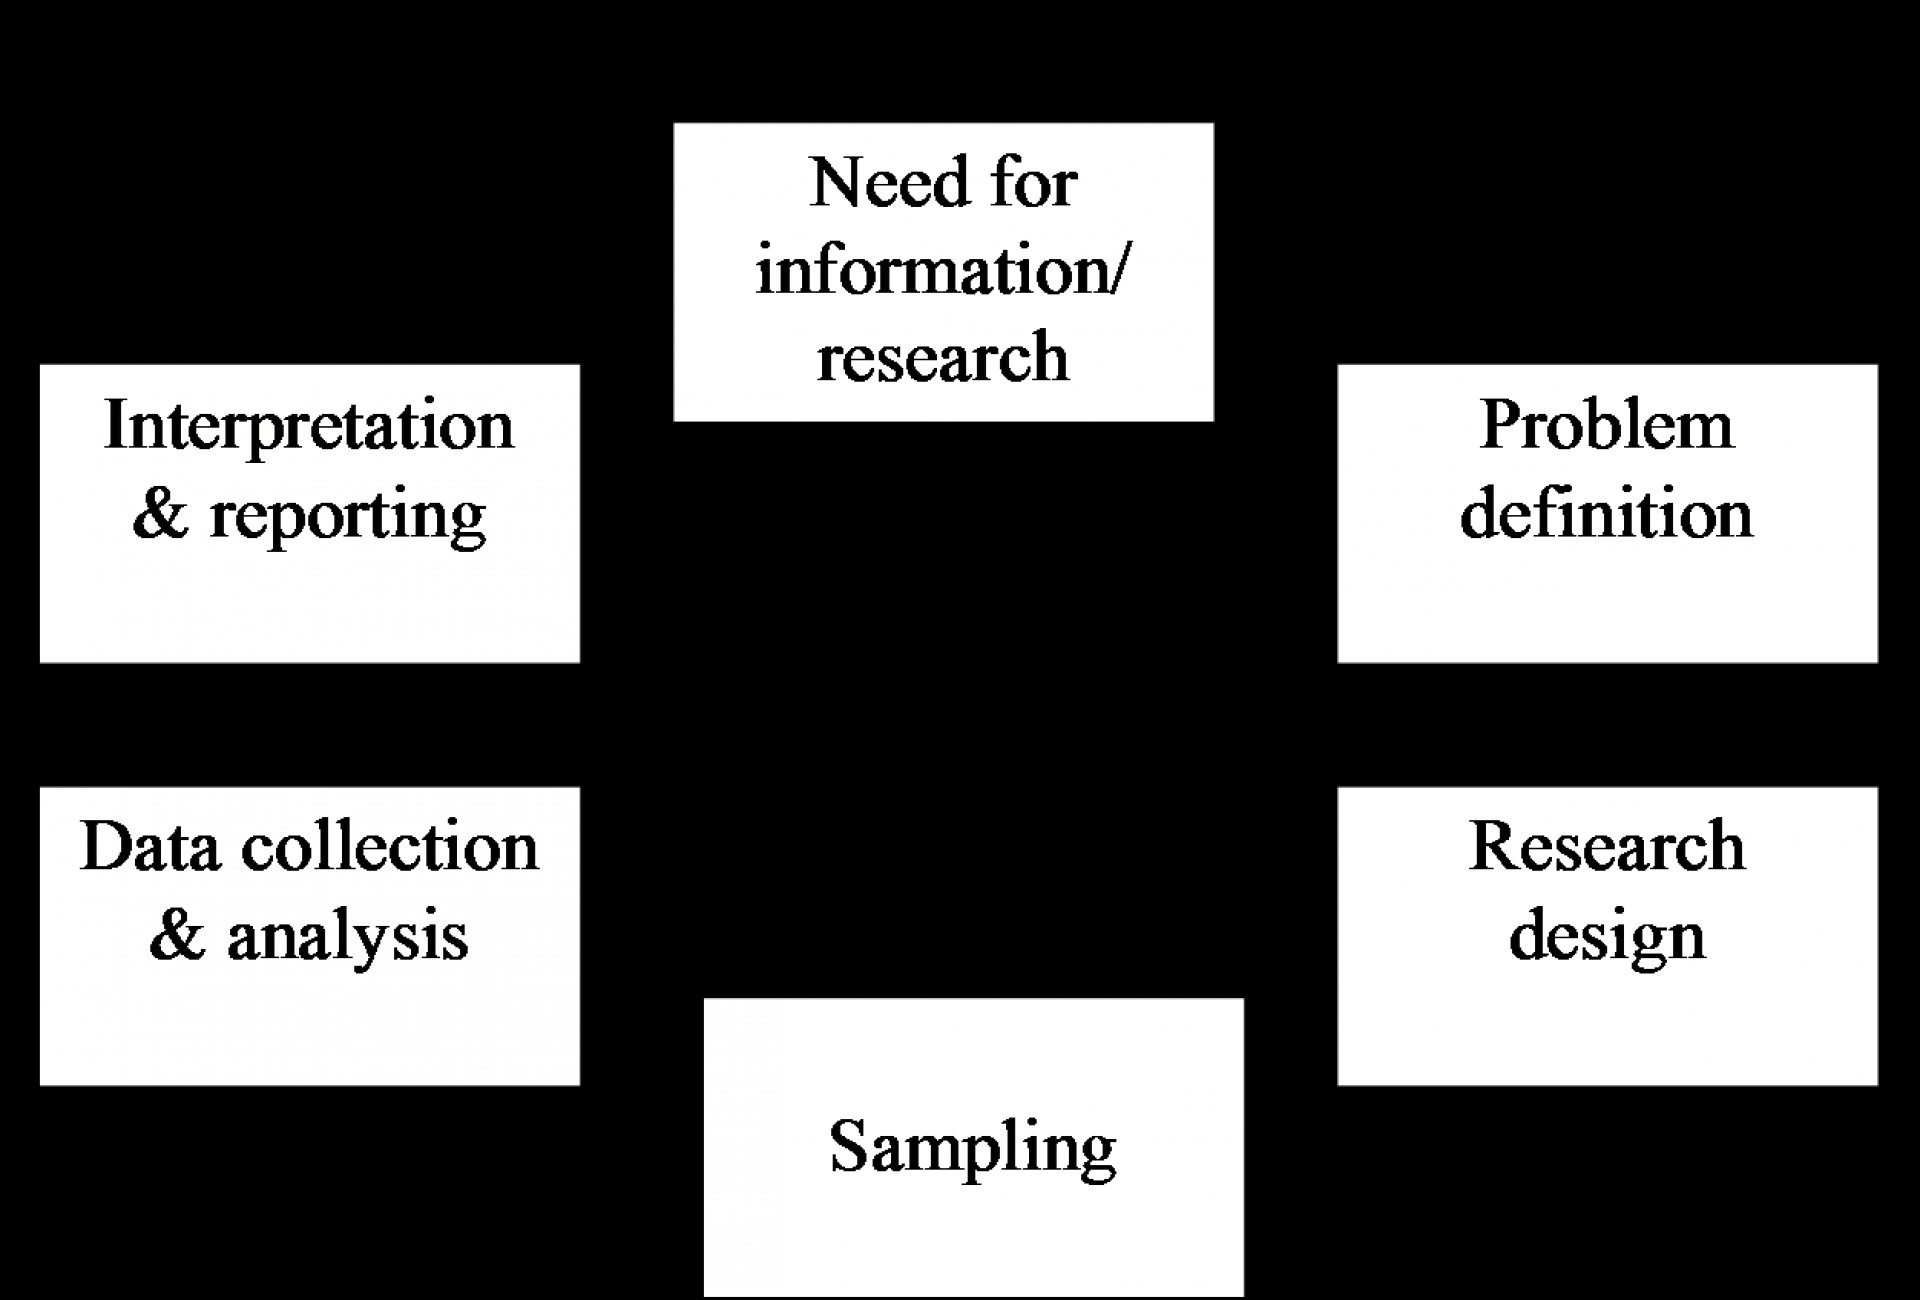 023 Researchprocess Hypothesis In Research Fantastic Paper Definition Example Of Pdf Null And Alternative 1920